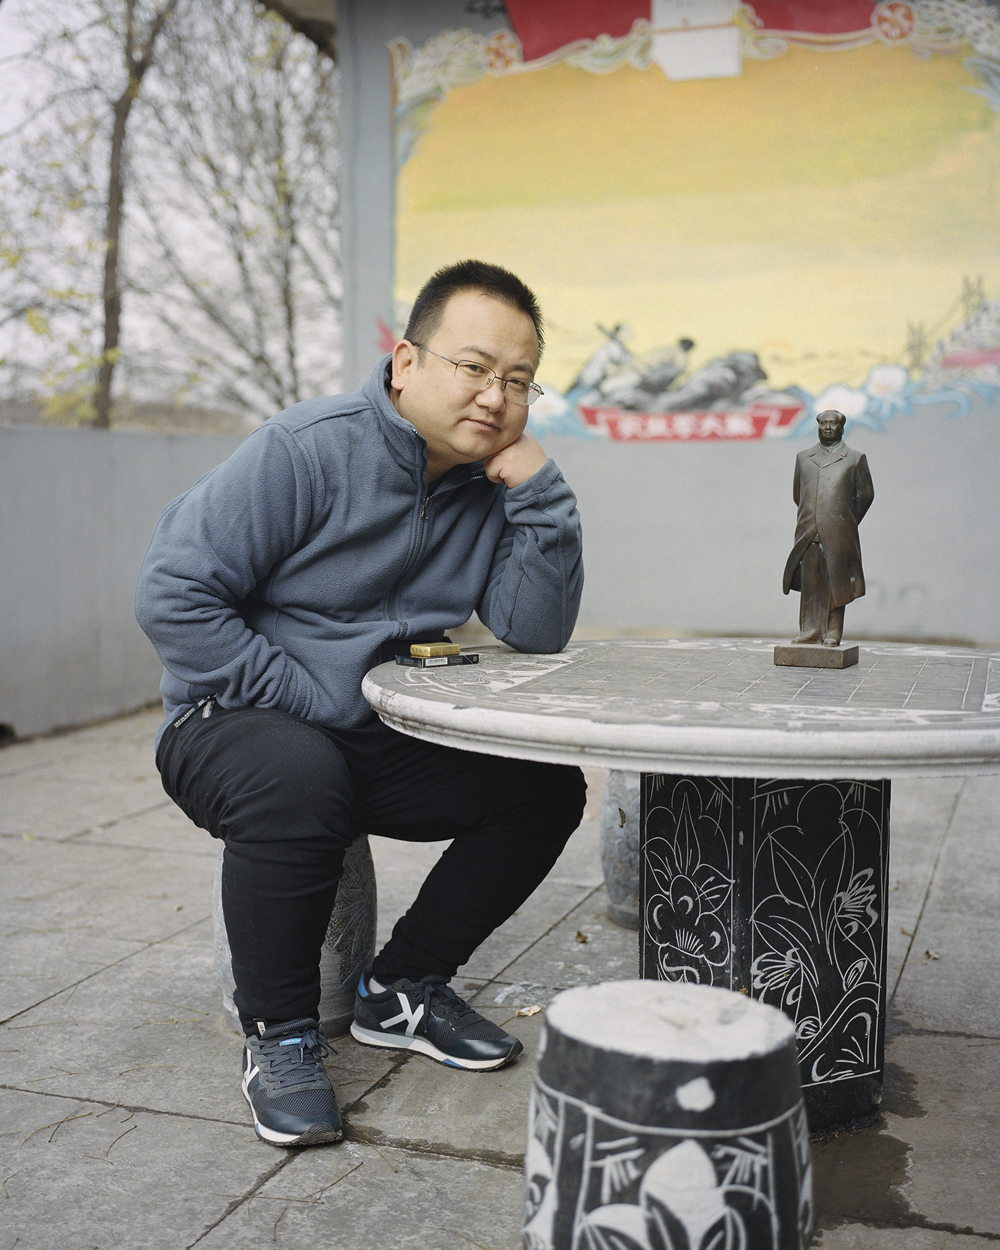 Zhao Mingxing poses for a photo with a Mao statue at his museum in Dazhai Village, Shanxi province, Nov. 17, 2018. Shi Yangkun/Sixth Tone